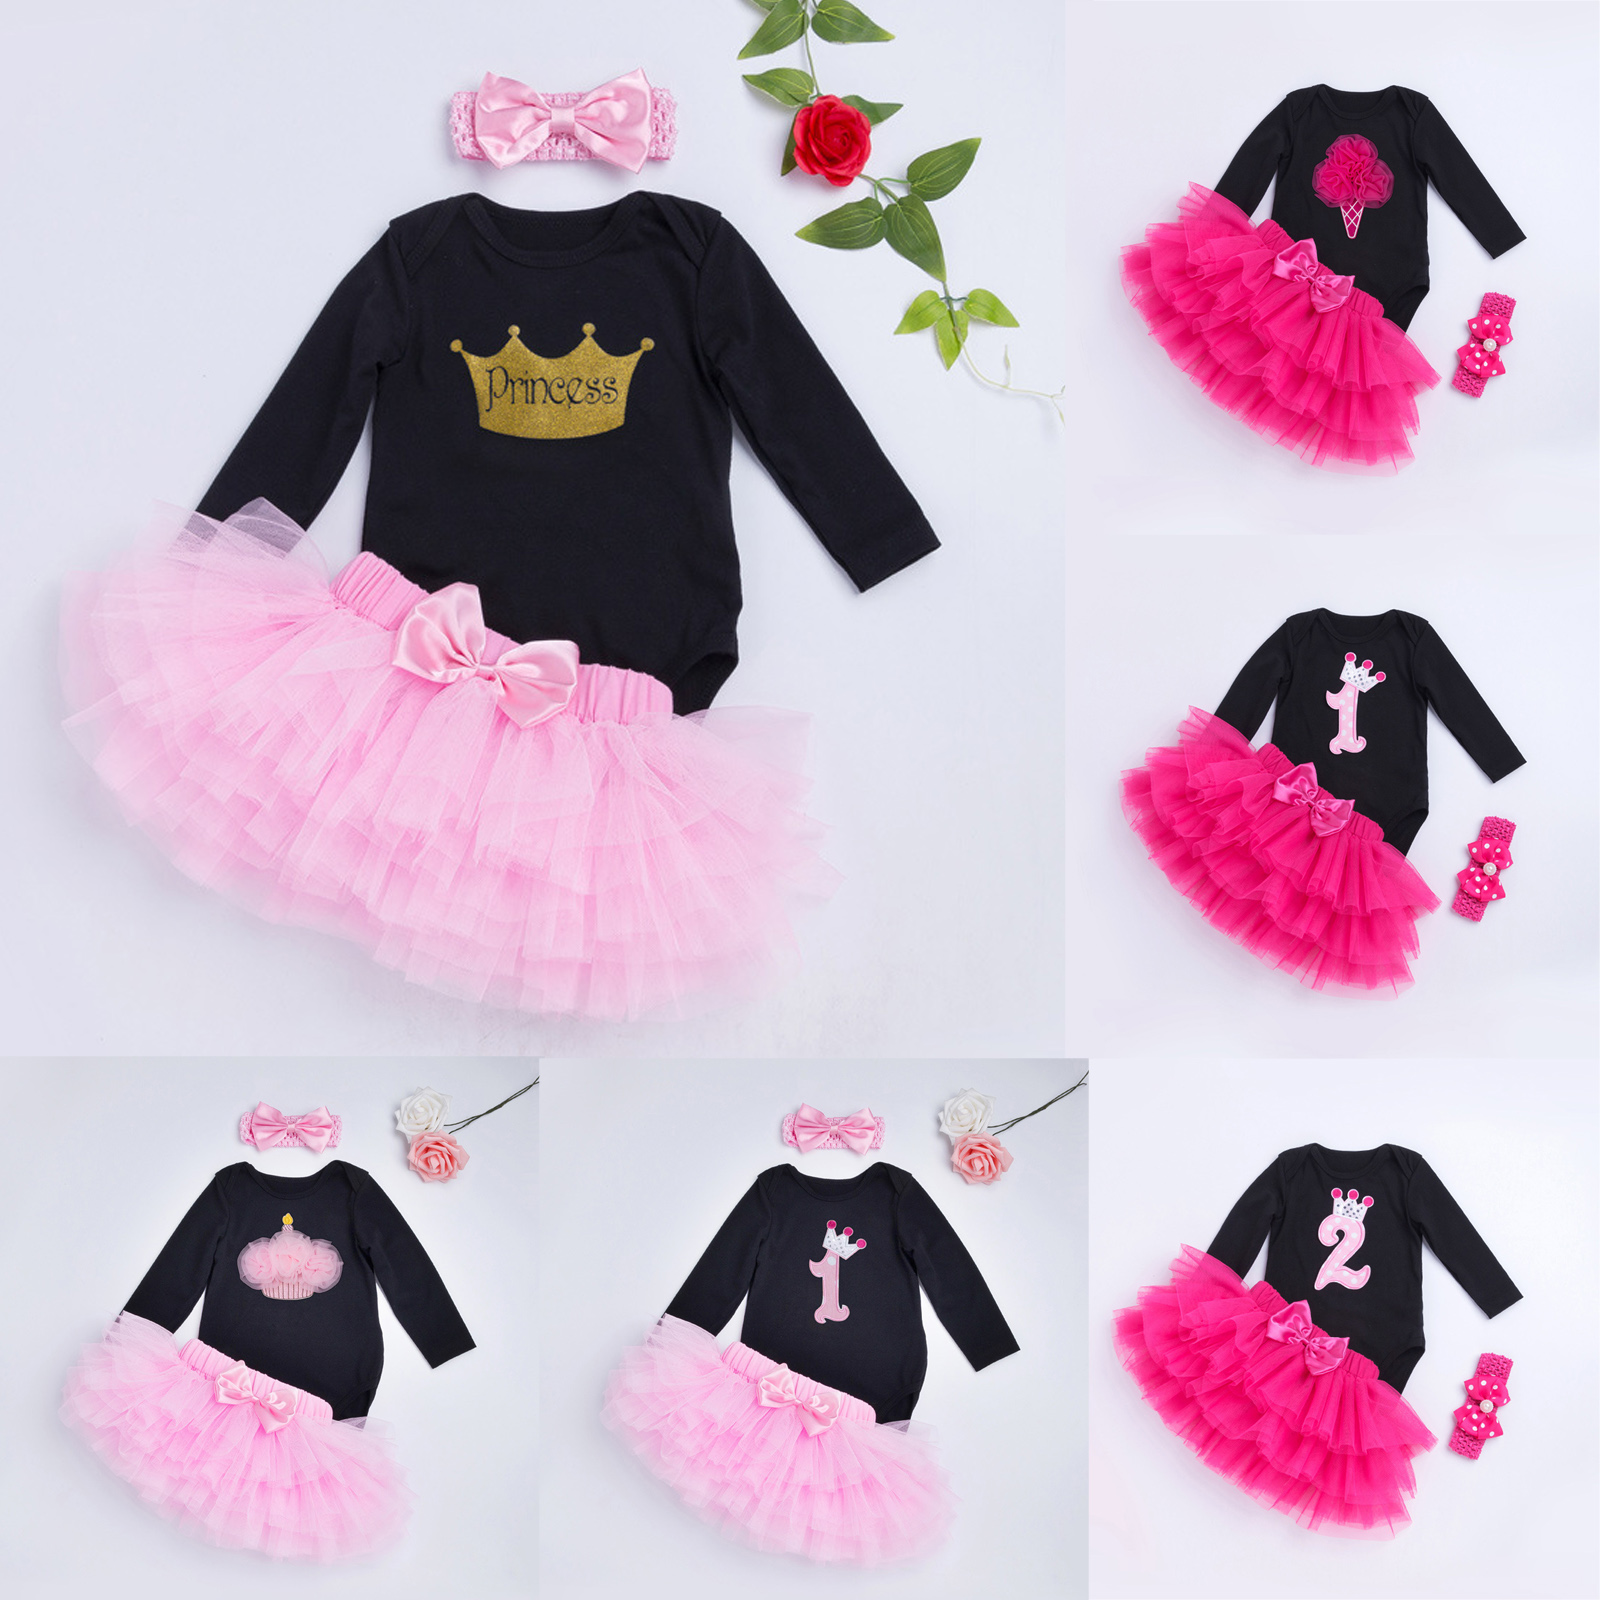 04cdde07b5c Details about Baby Girl Birthday Outfits Clothes Long Sleeve Romper Tops  Tutu Skirt Dress 3PCS